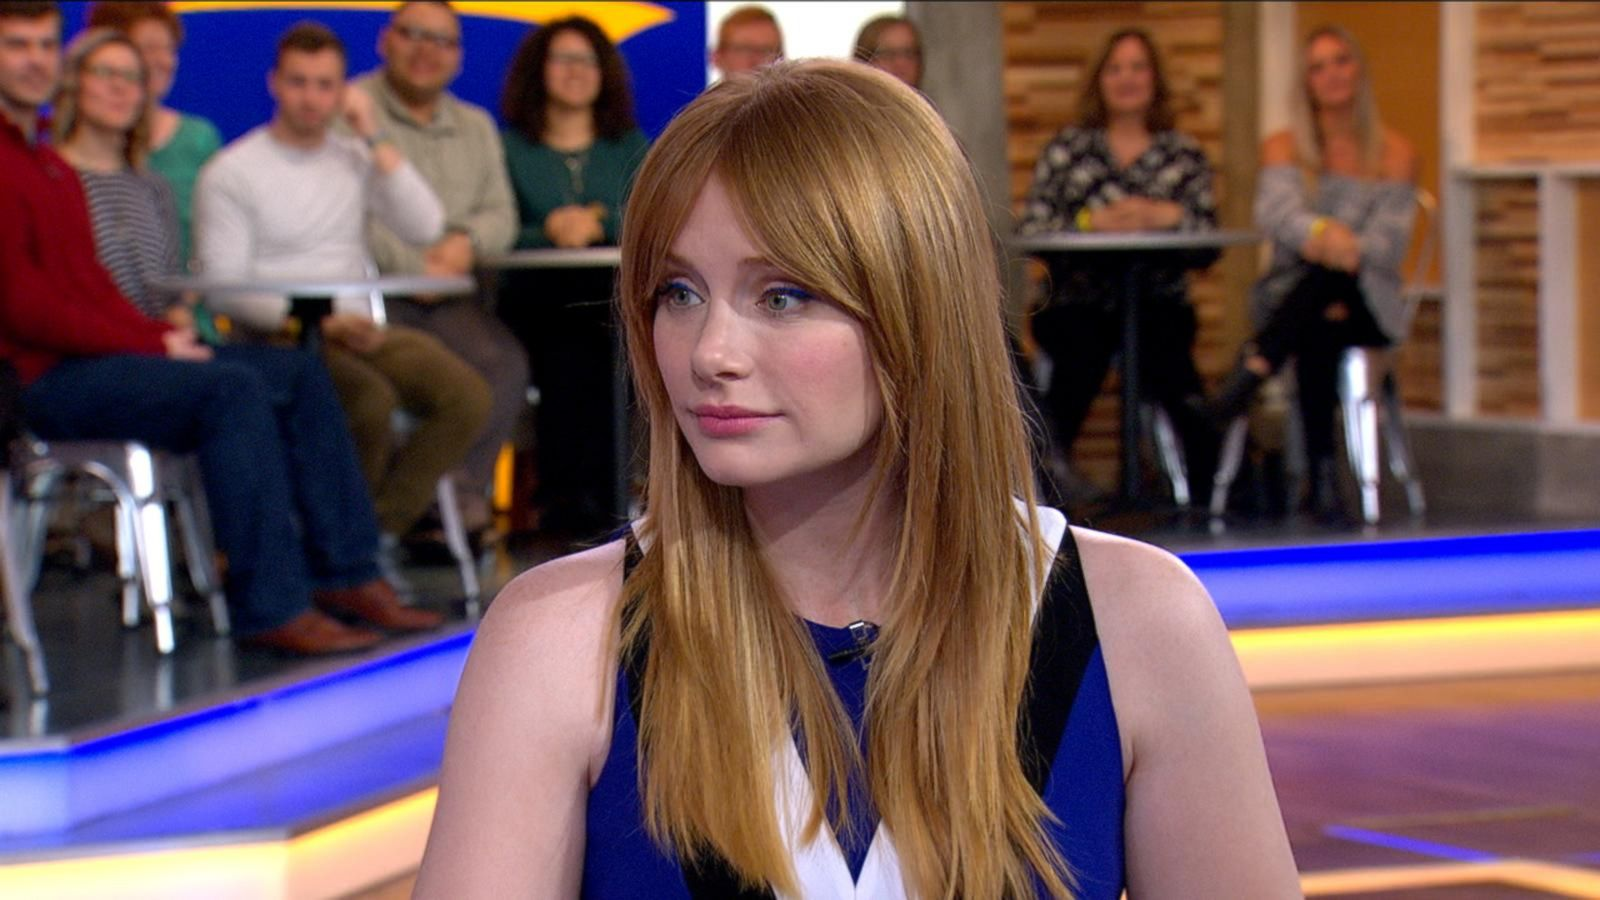 VIDEO: Bryce Dallas Howard Talks About Her Upcoming Movie 'Gold'